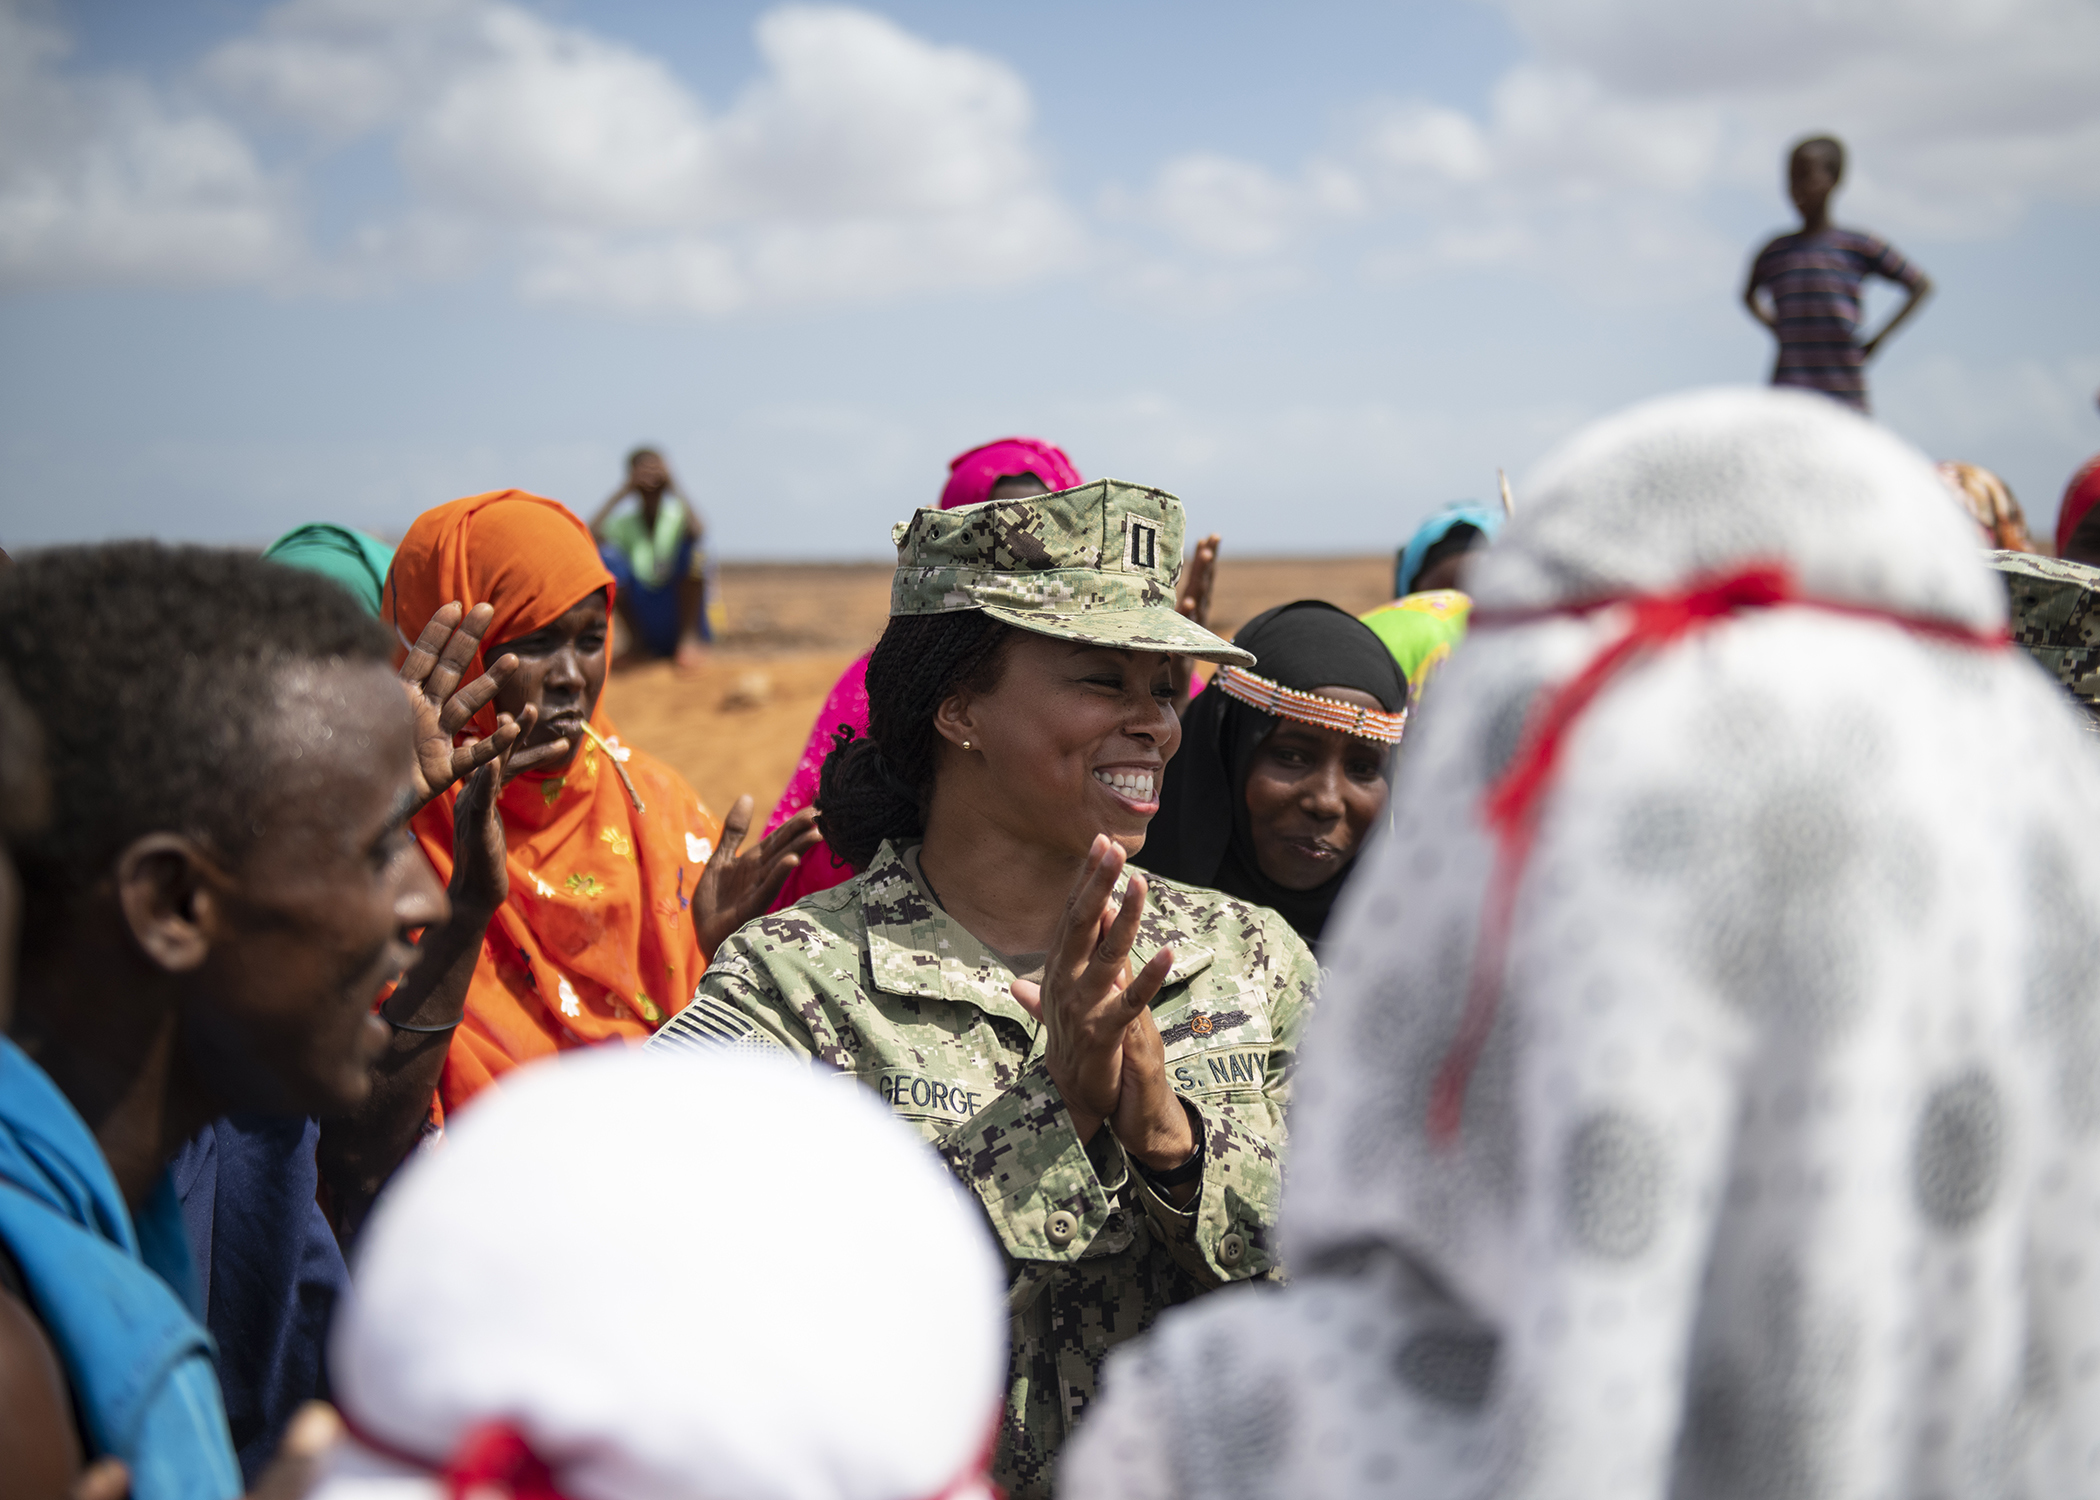 U.S. Navy Lt. Mellany George, an engineering project manager assigned to Combined Joint Task Force-Horn of Africa (CJTF-HOA), laughs as she dances with Djiboutian citizens before the Ali Oune Medical Clinic ribbon cutting ceremony in Ali Oune, Djibouti, Jan. 31, 2019. The clinic, which U.S. Navy Seabees from Naval Mobile Construction Battalion 1, assigned to CJTF-HOA, have been working to complete for five months, is intended to enhance the Ministry of Health for Djibouti's ability to provide basic medical, birth and after care to the Ali Oune village and its more than 1,000 residents and rural neighbors. (U.S. Air Force photo by Tech. Sgt. Shawn Nickel)